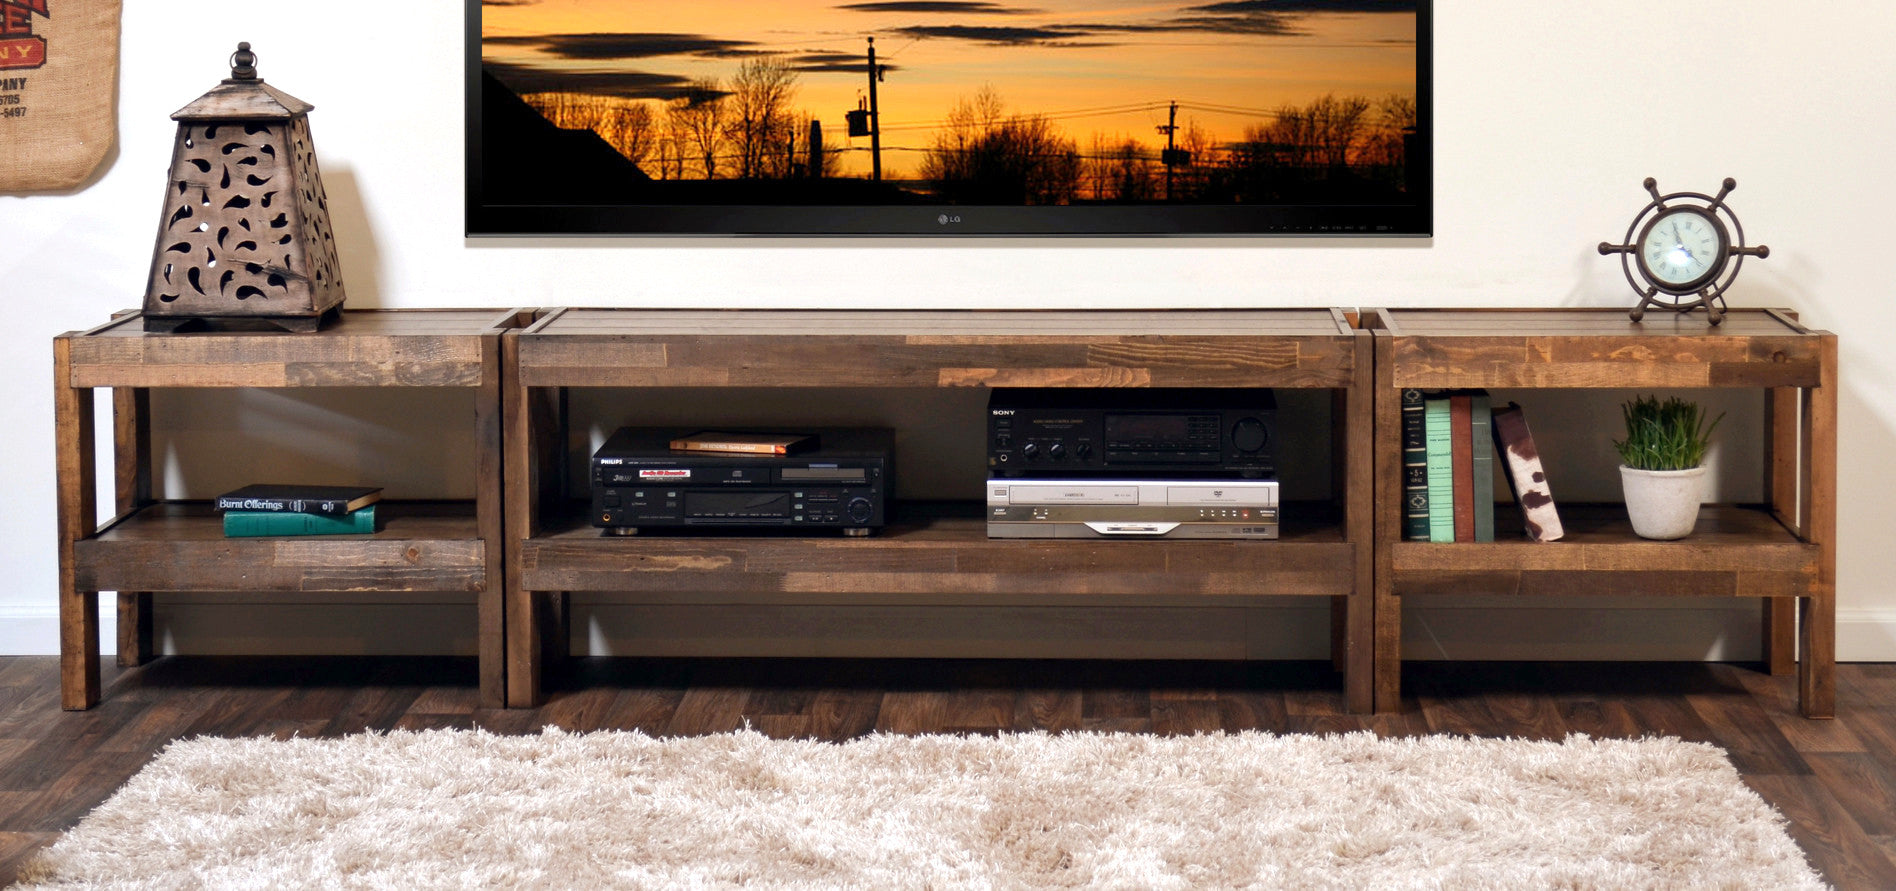 Rustic Reclaimed TV Stand Entertainment Center   PresEARTH Spice